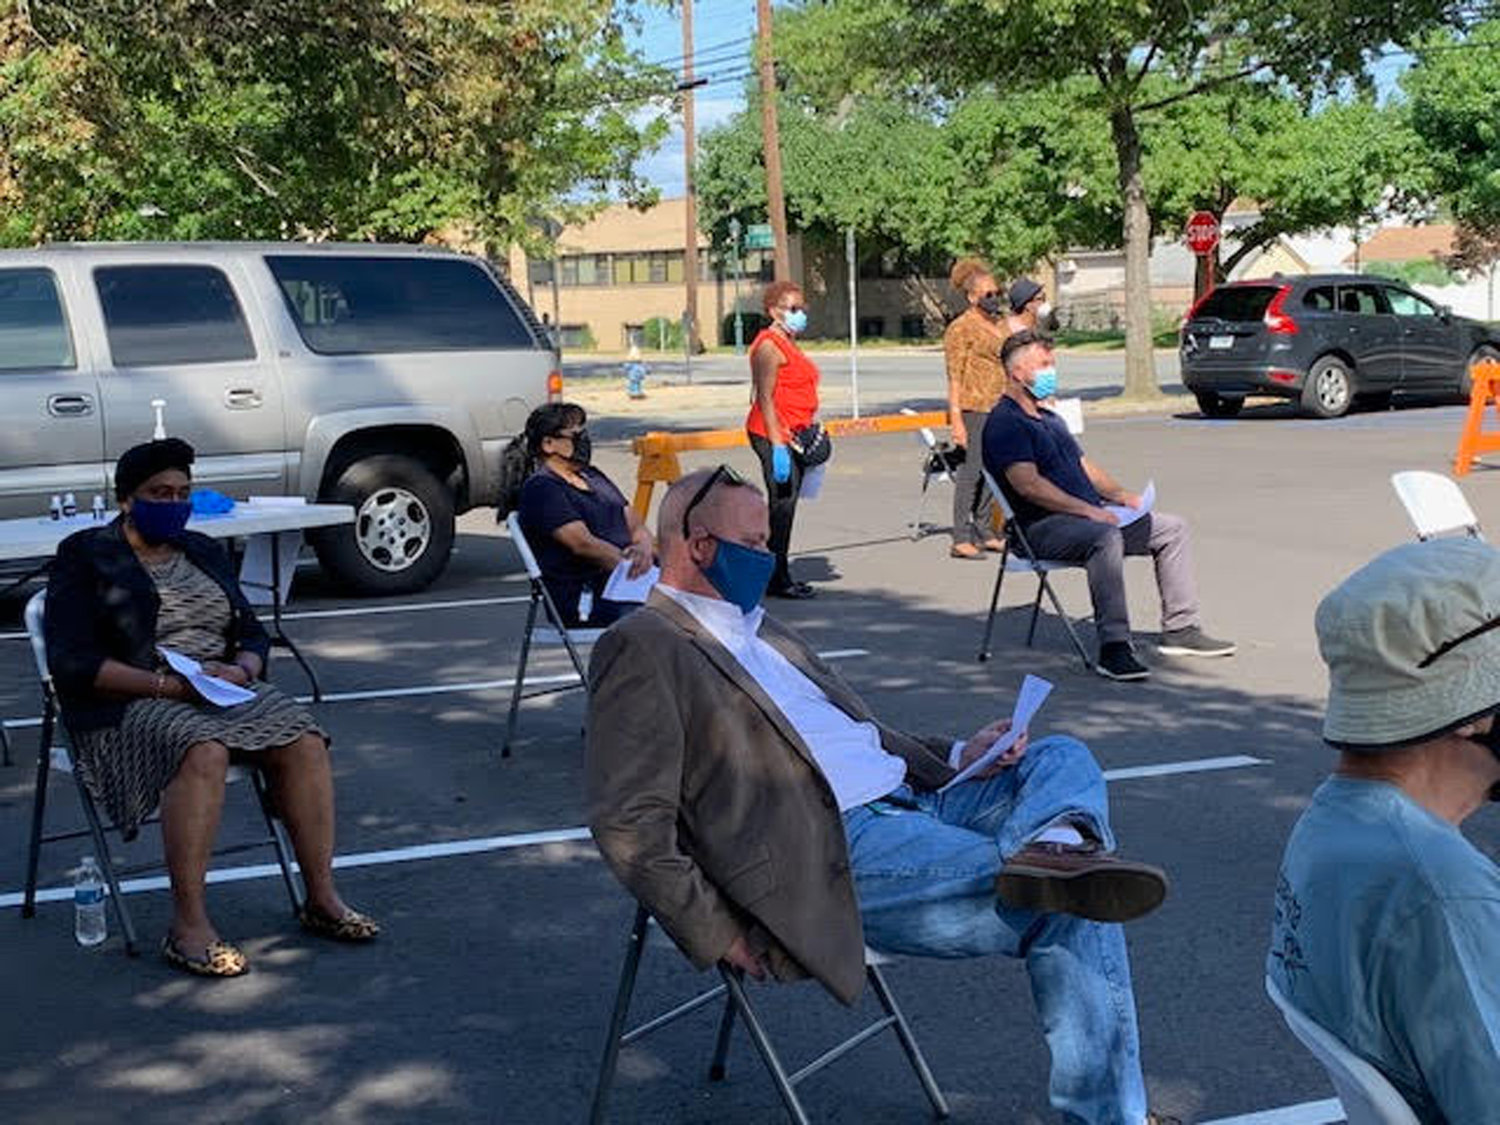 The Valley Stream Presbyterian Church opened for in-person services out doors for the first time on Saturday, Sept. 12.